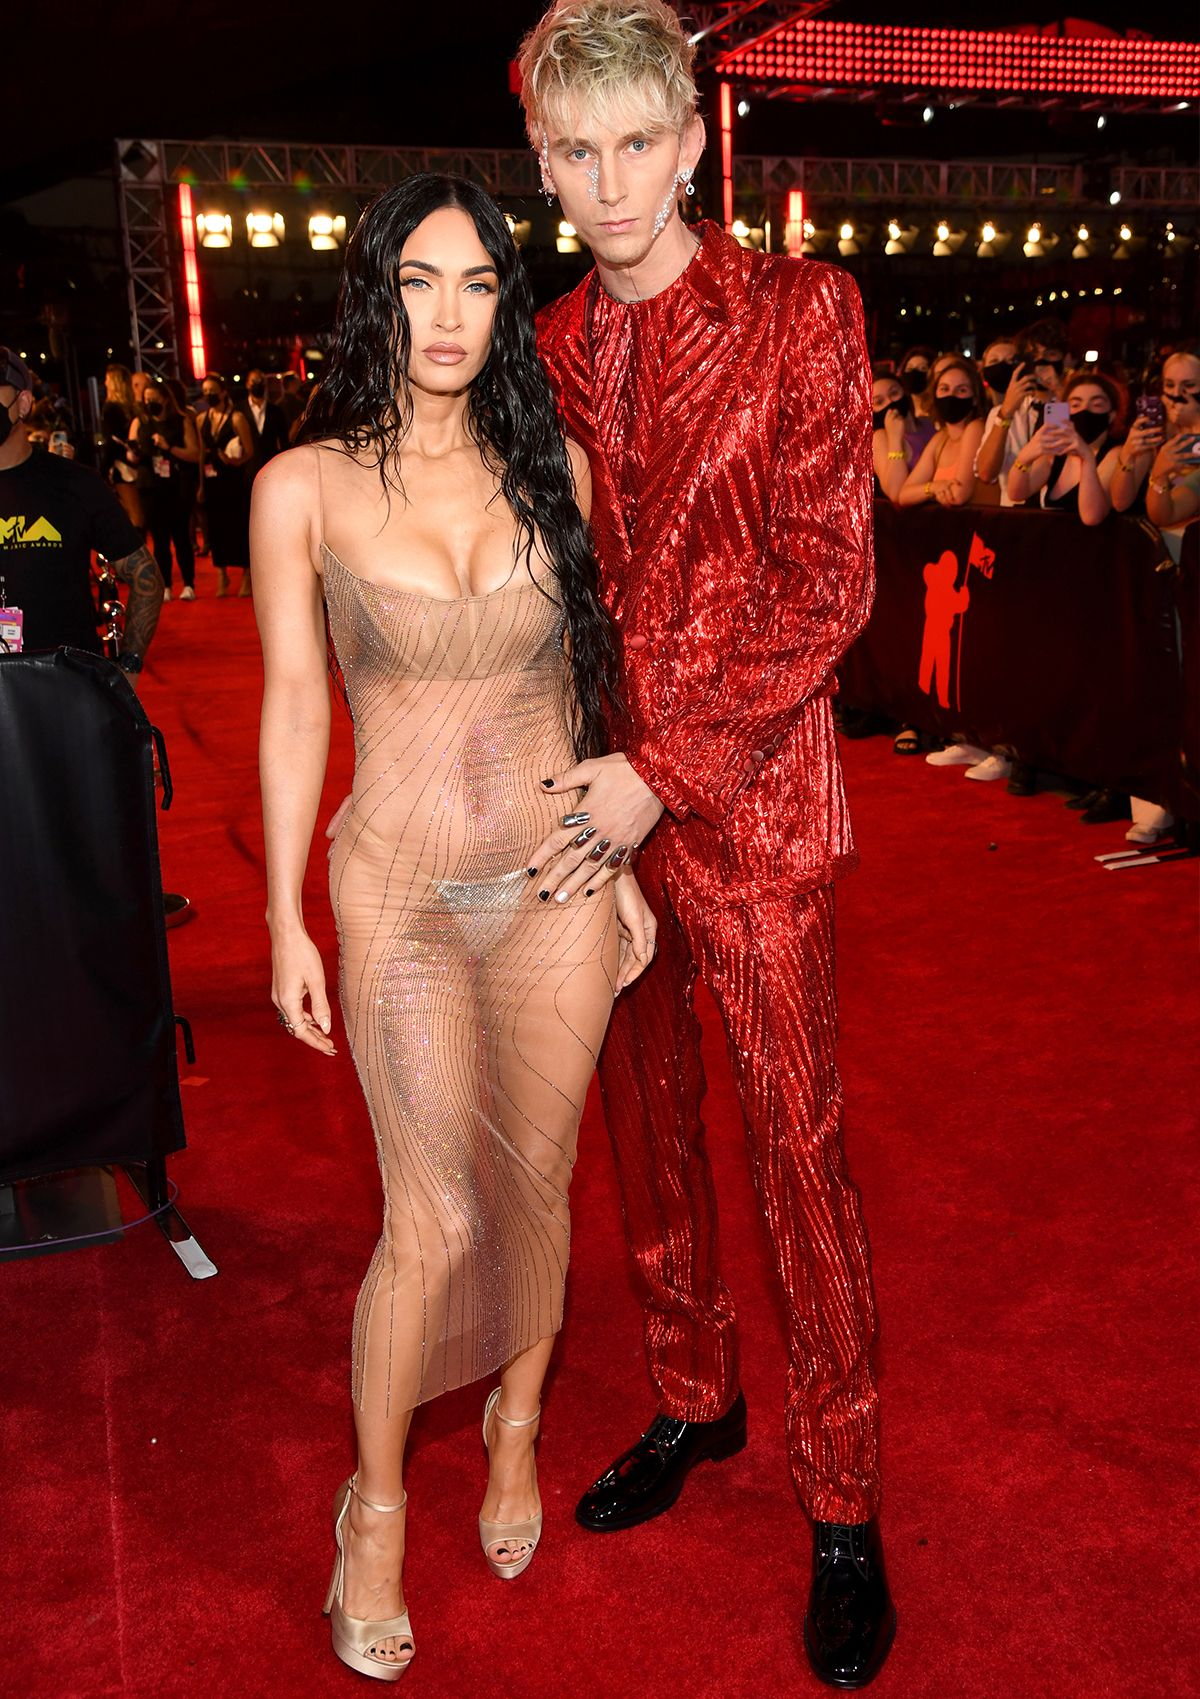 The MTV VMAs Red Carpet Looks That Shocked and Amazed Us - mtv vma red carpet 2021 295172 1631490303604